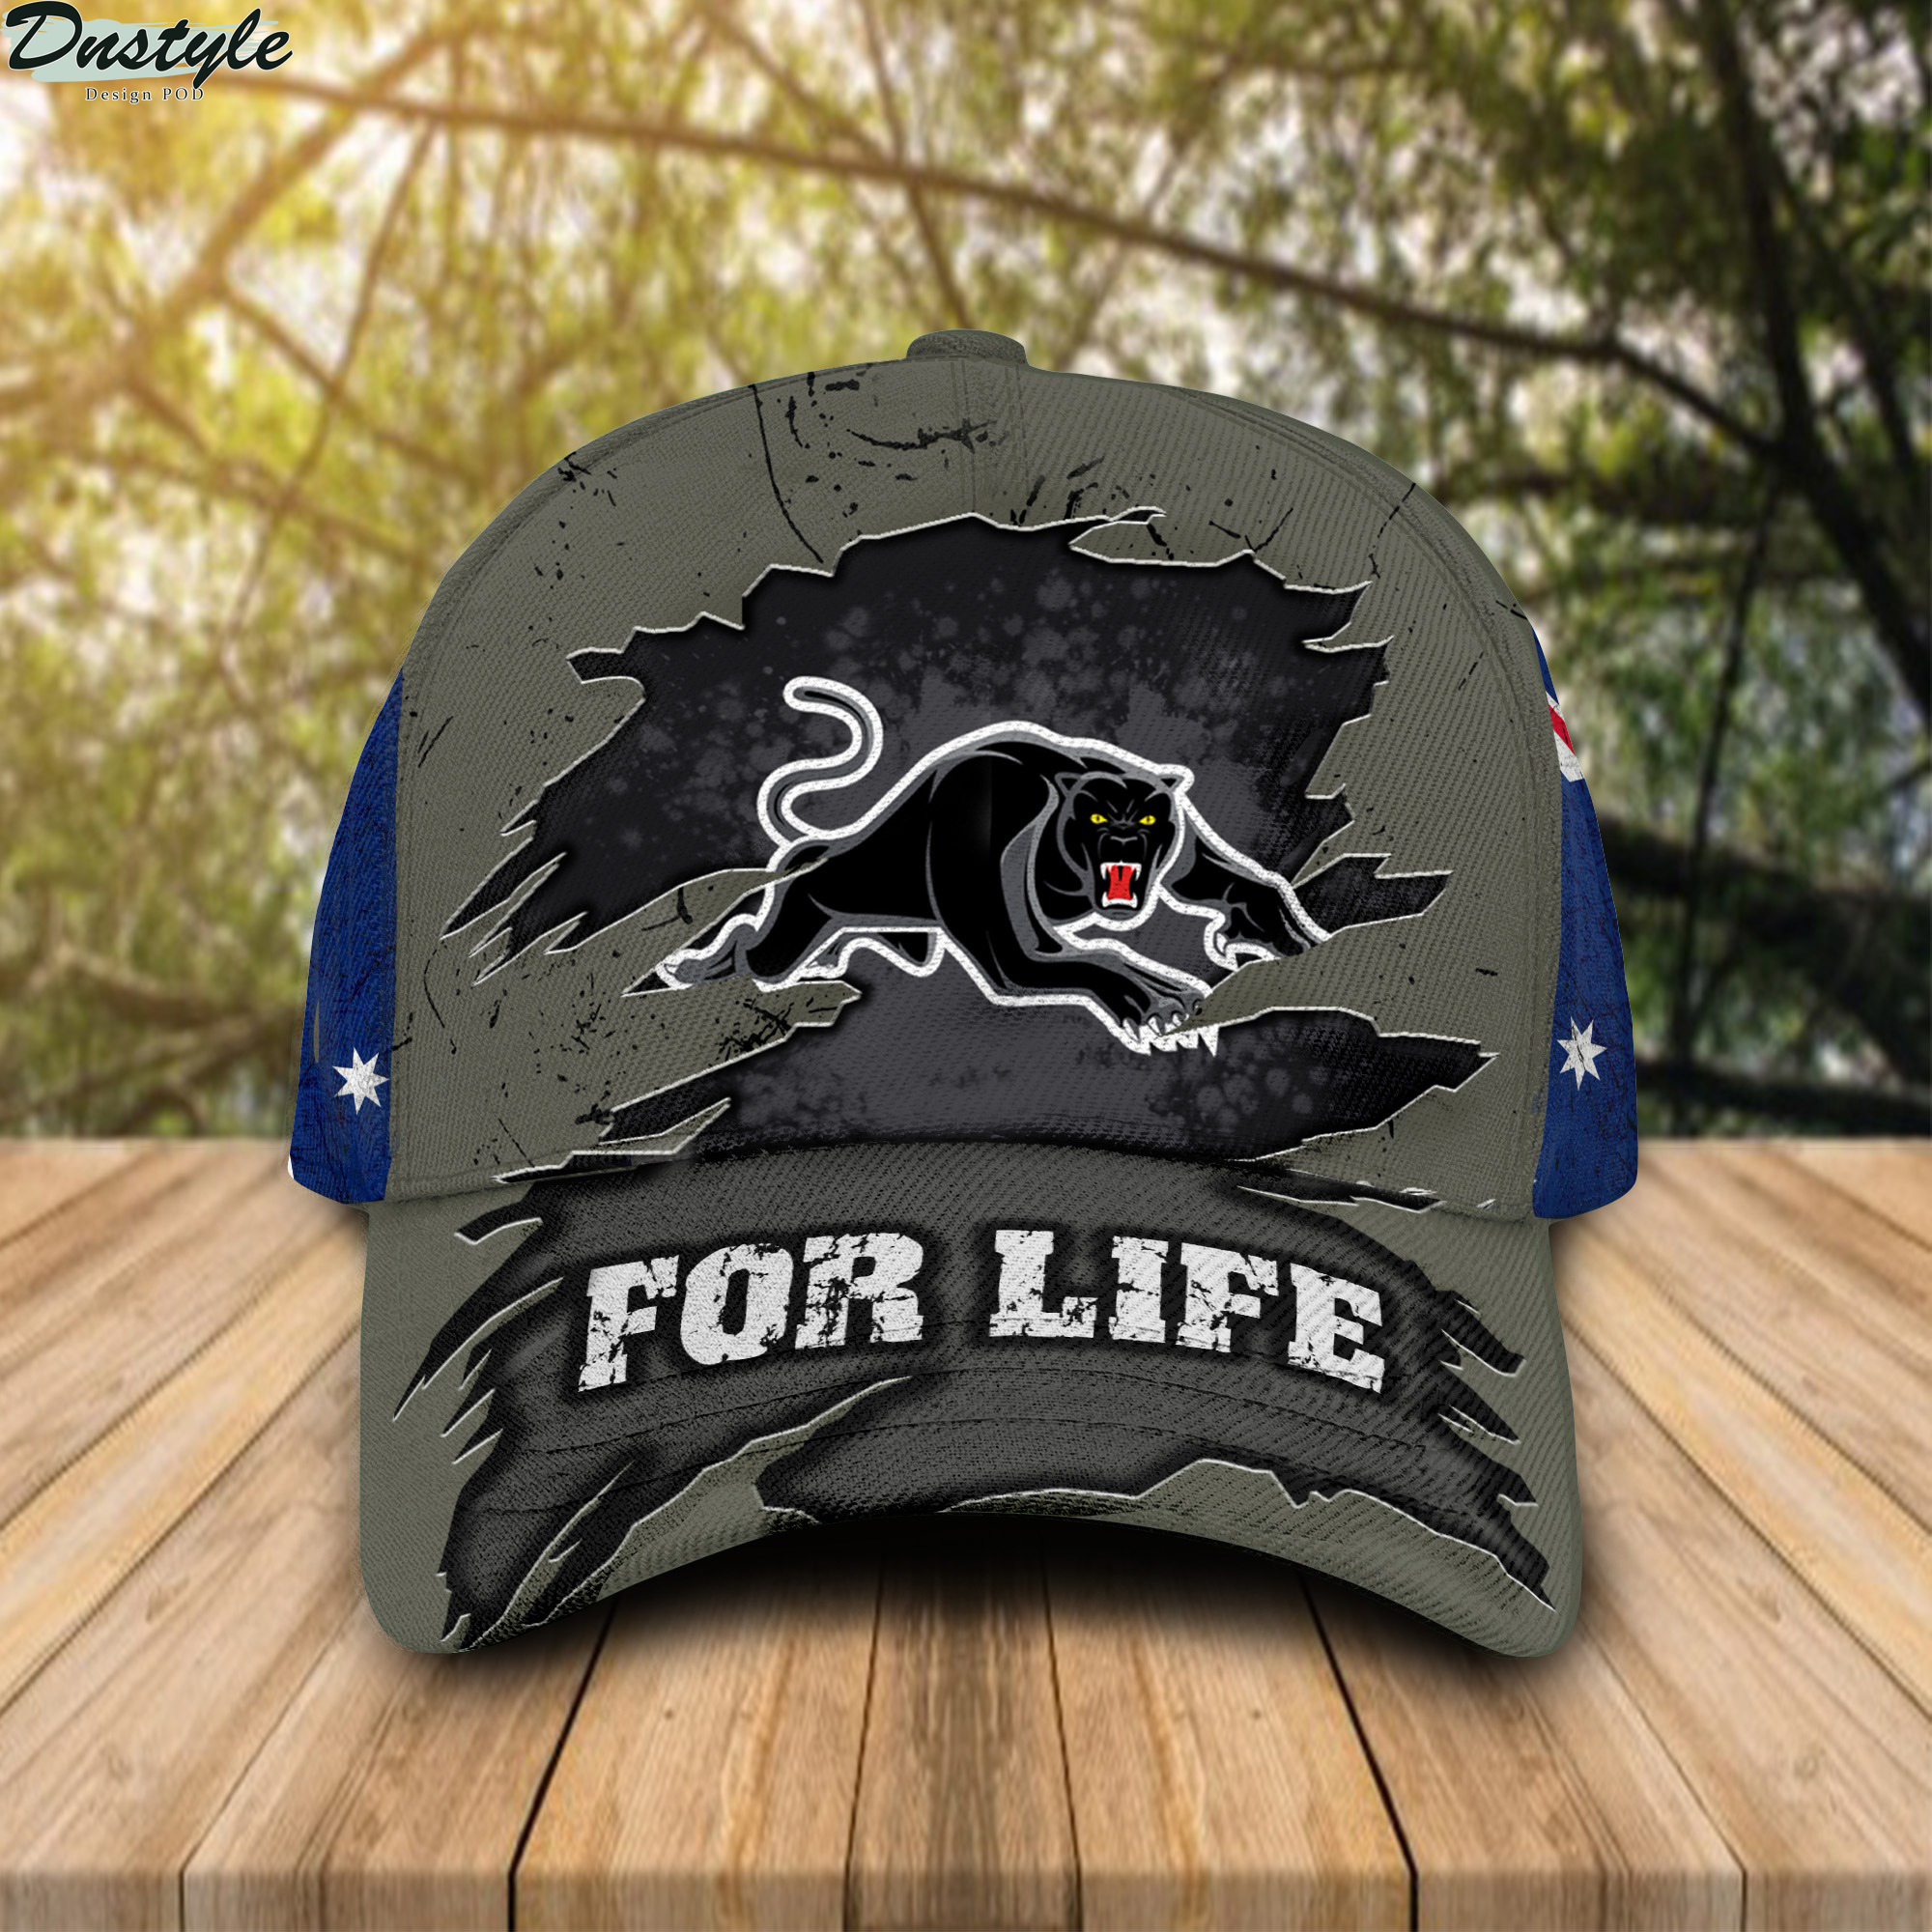 Penrith Panthers for life cap